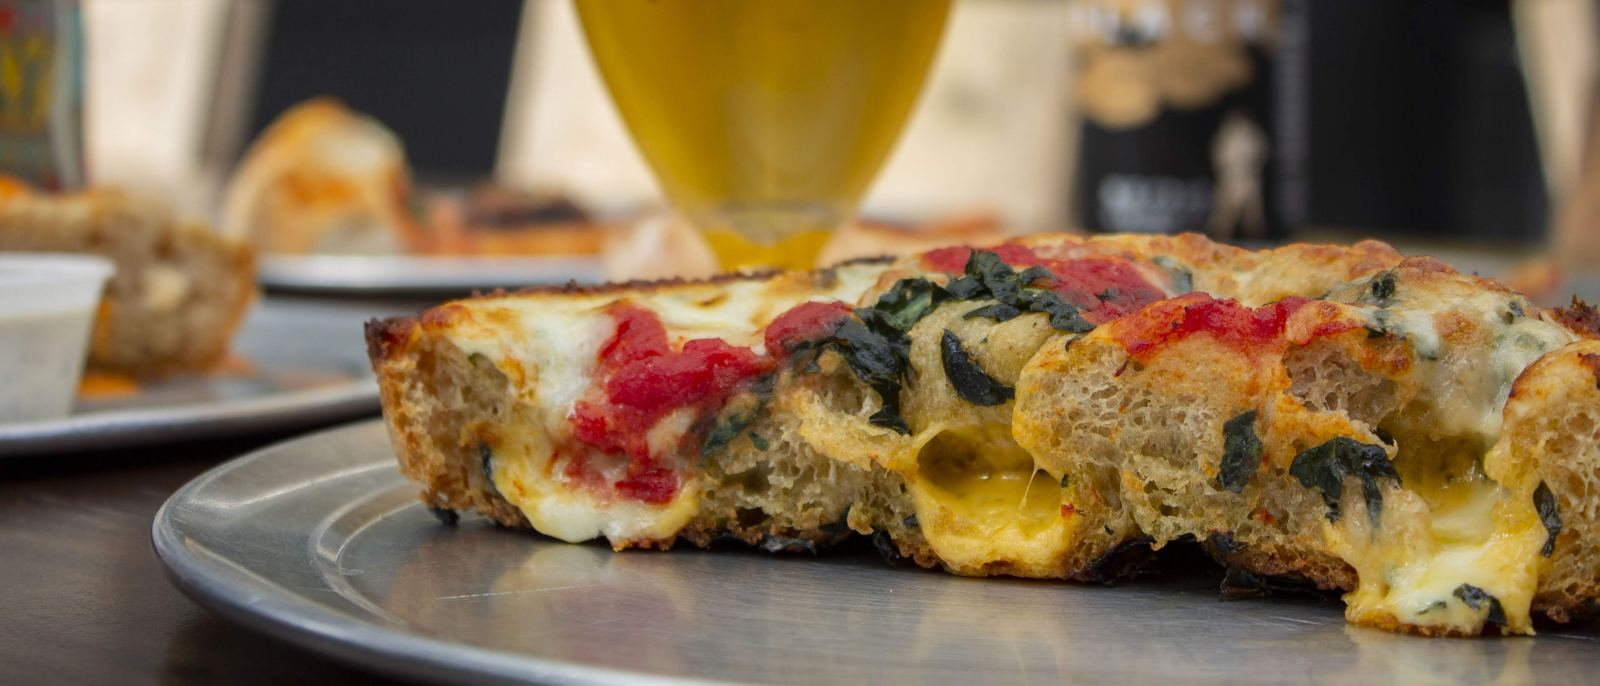 Vegan Detroit-style deep dish pizza at California Sun